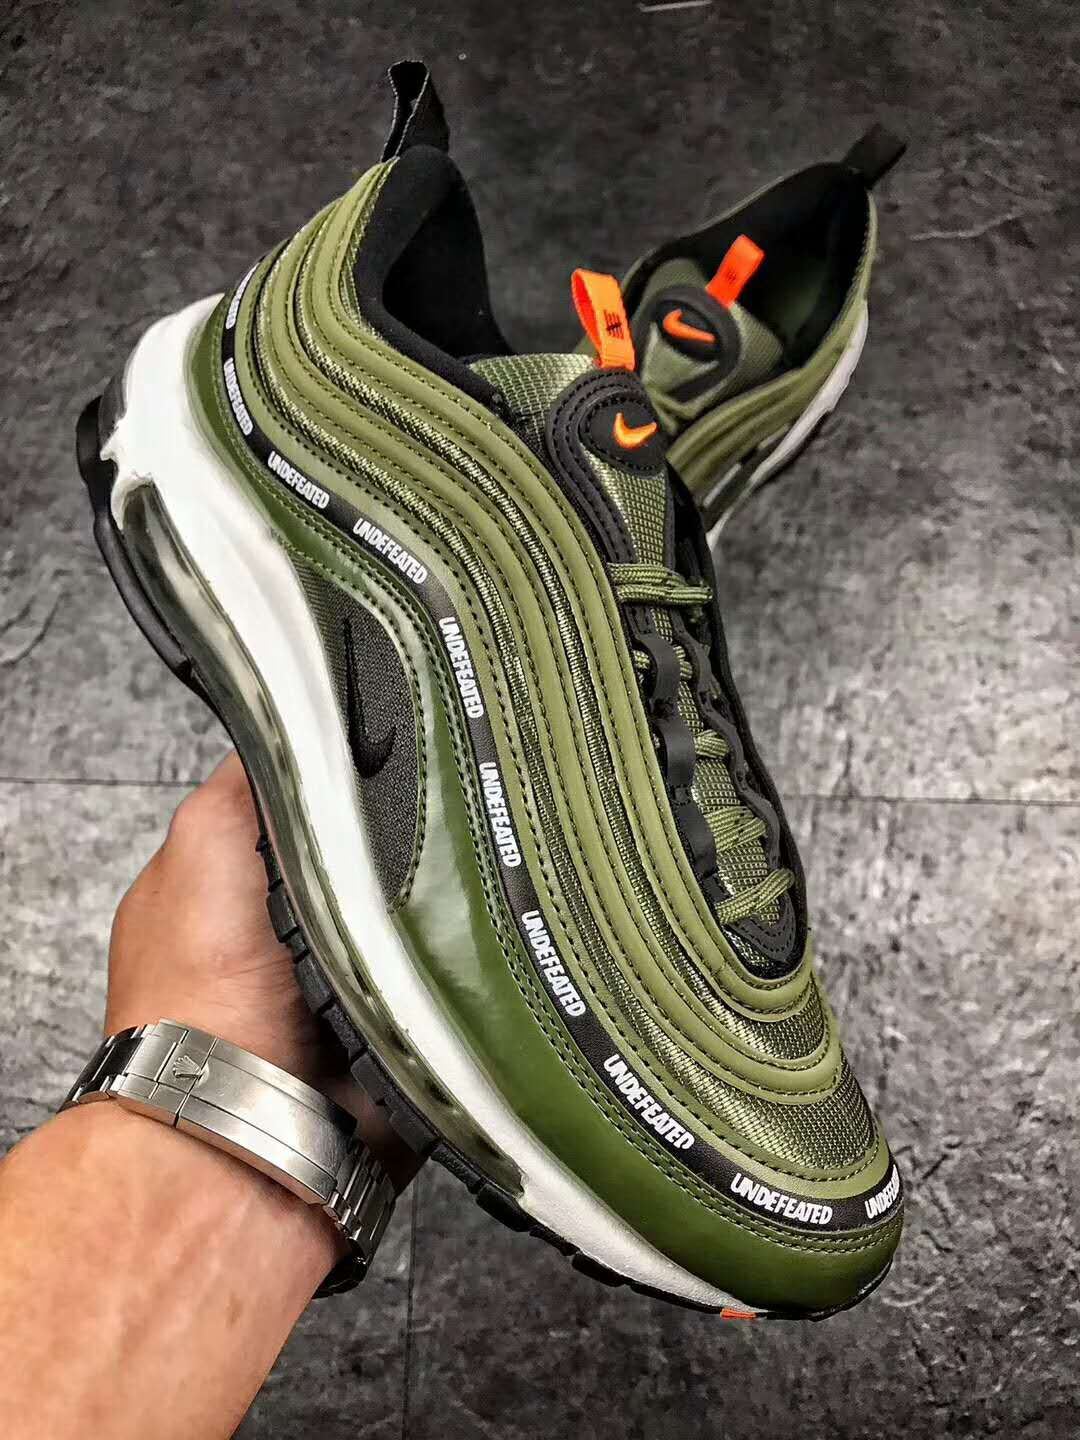 innovative design 28a0f f6a3e Undefeated x nike air max 97 Olive AJ1986-300 flight jacket militia green